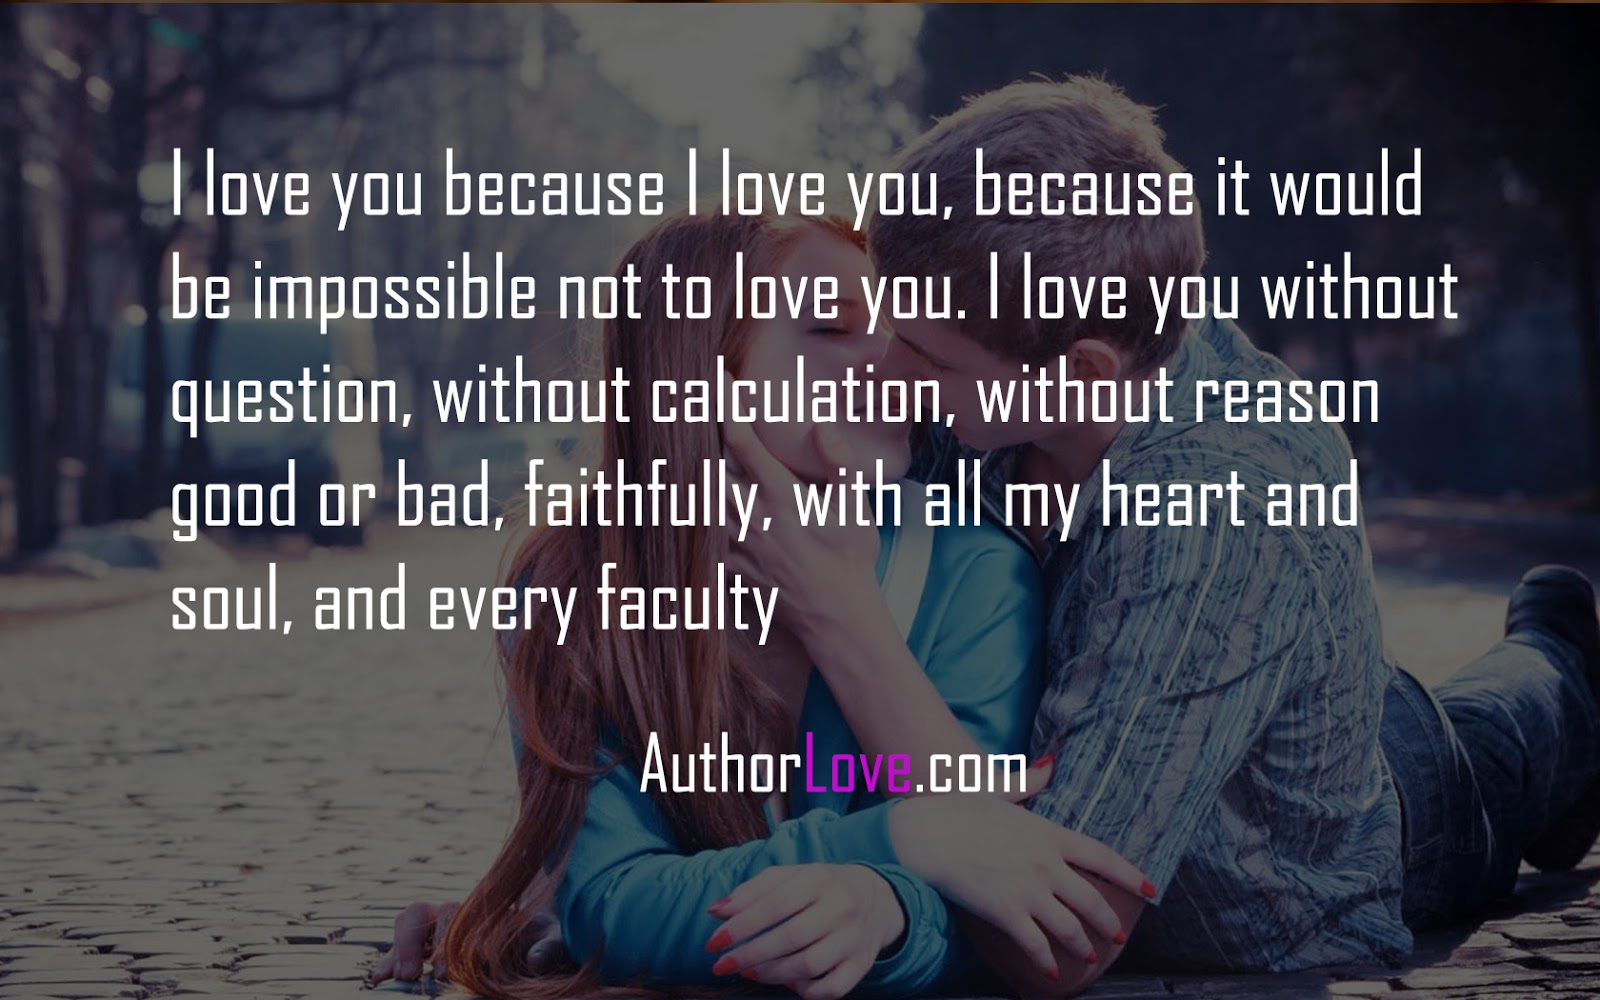 I Love You Quotes Because : Love Her Because Quotes i love you because i love you, because it ...